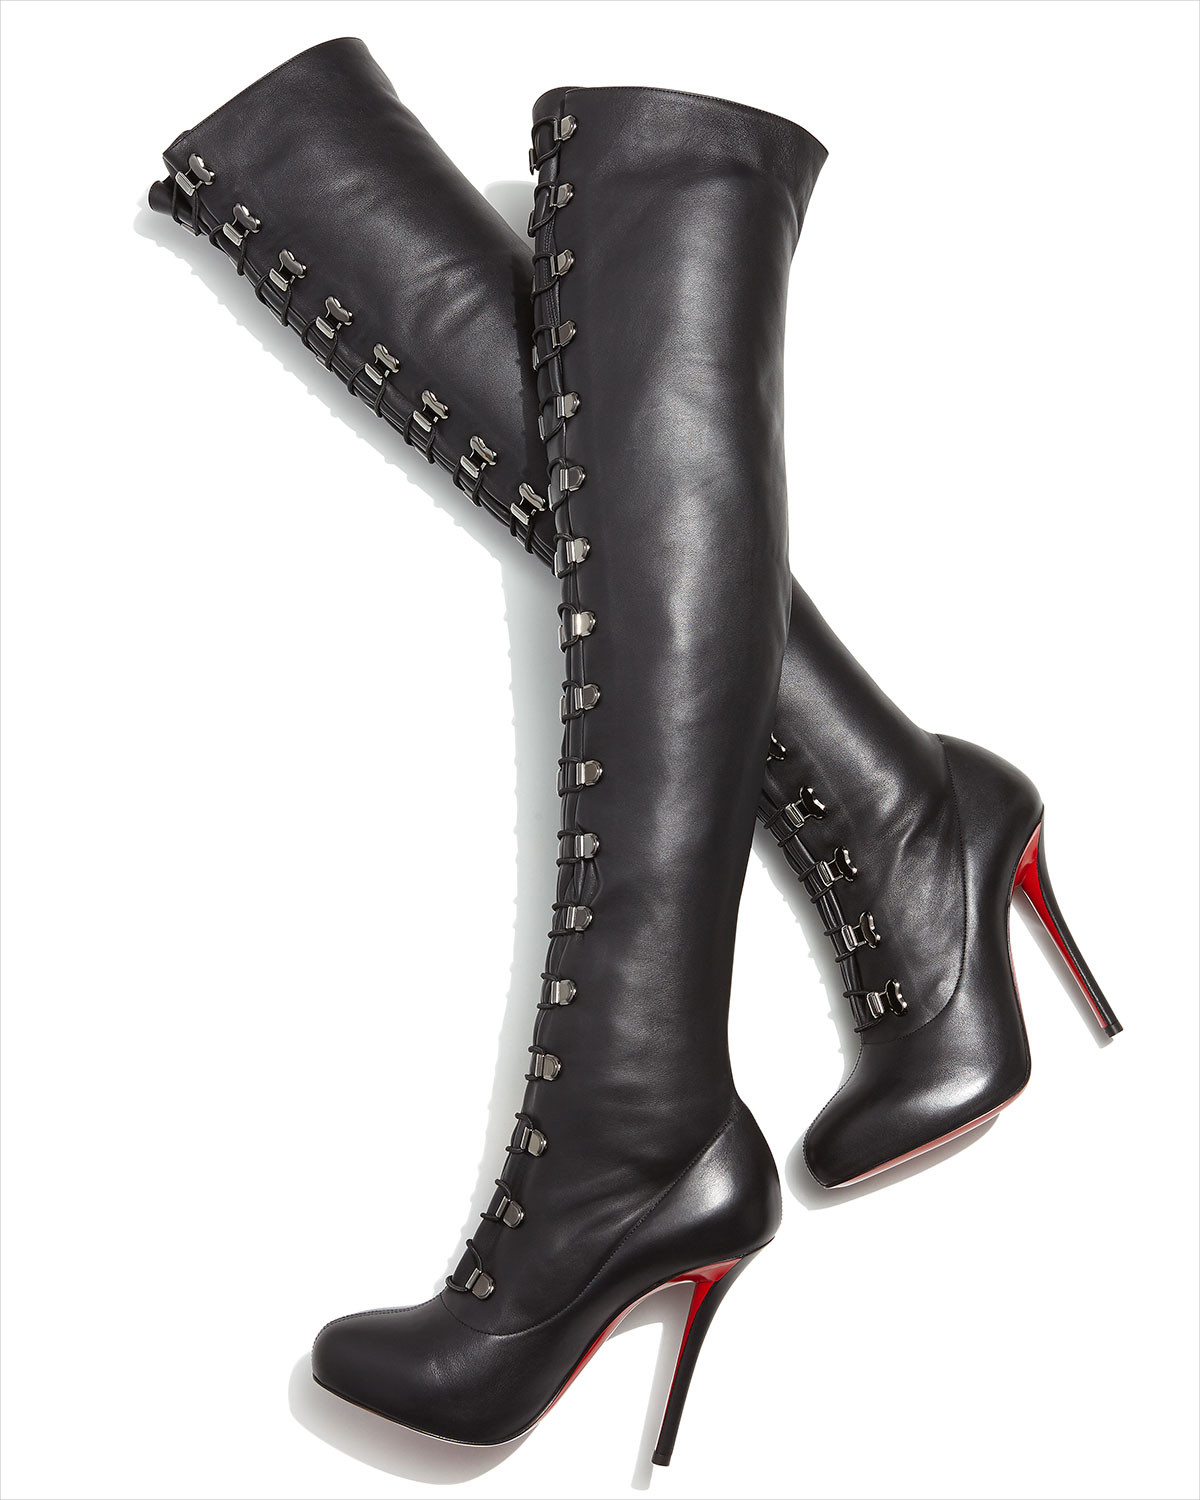 Christian Louboutin Red Sole Knee High Boots